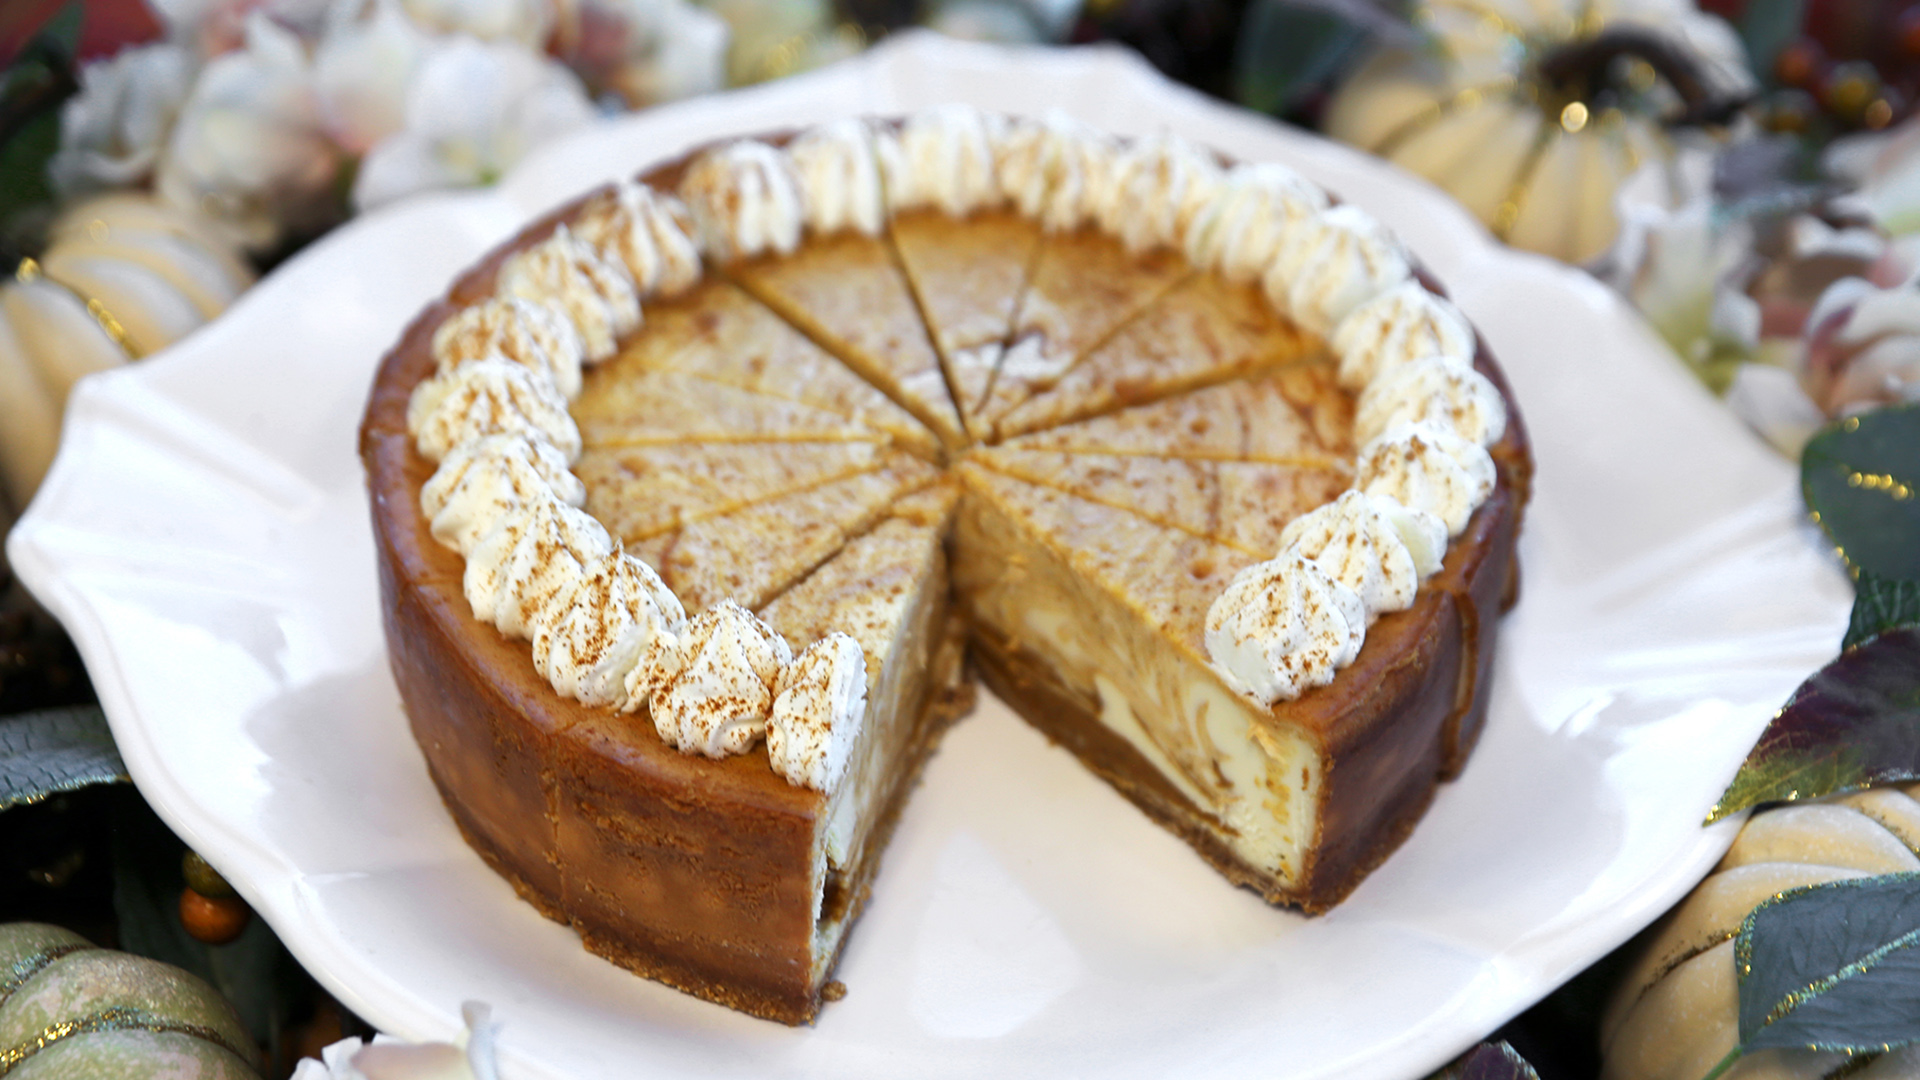 Sam S Club Is Selling A Giant Pumpkin Cheesecake Today Com